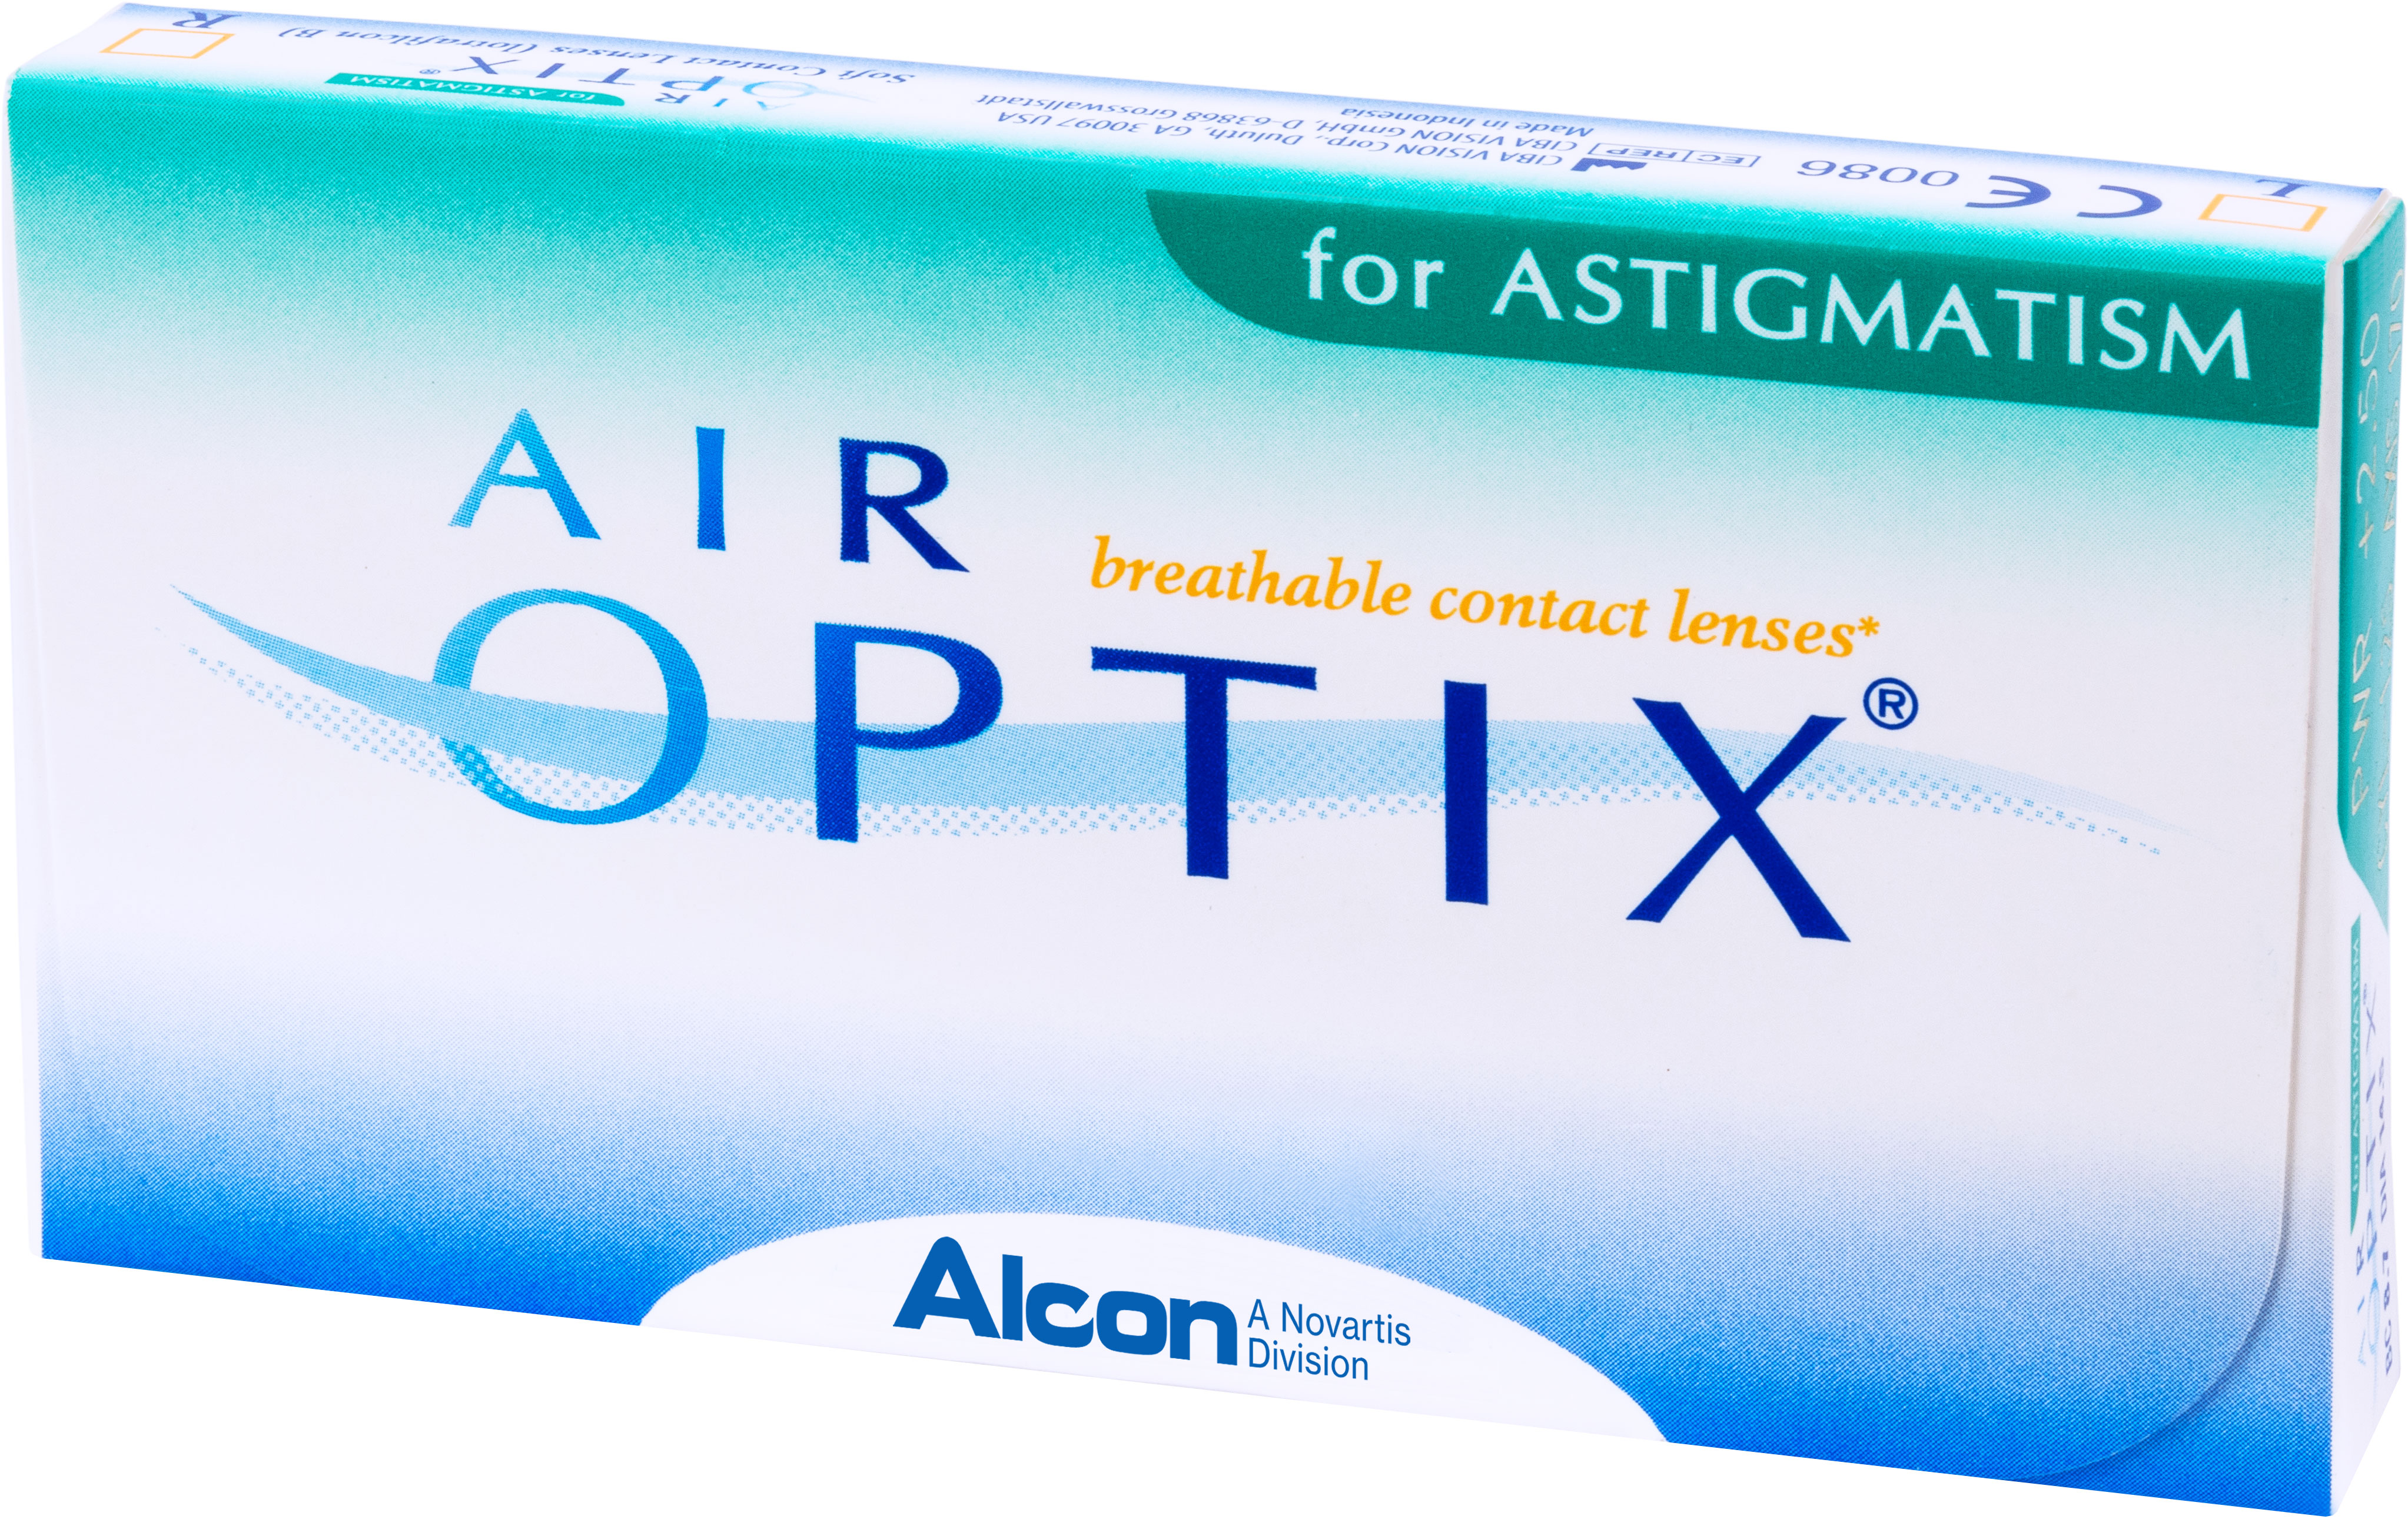 Аlcon контактные линзы Air Optix for Astigmatism 3pk /BC 8.7/DIA14.5/PWR -3.25/CYL -1.25/AXIS 90100041079with Hydraclear